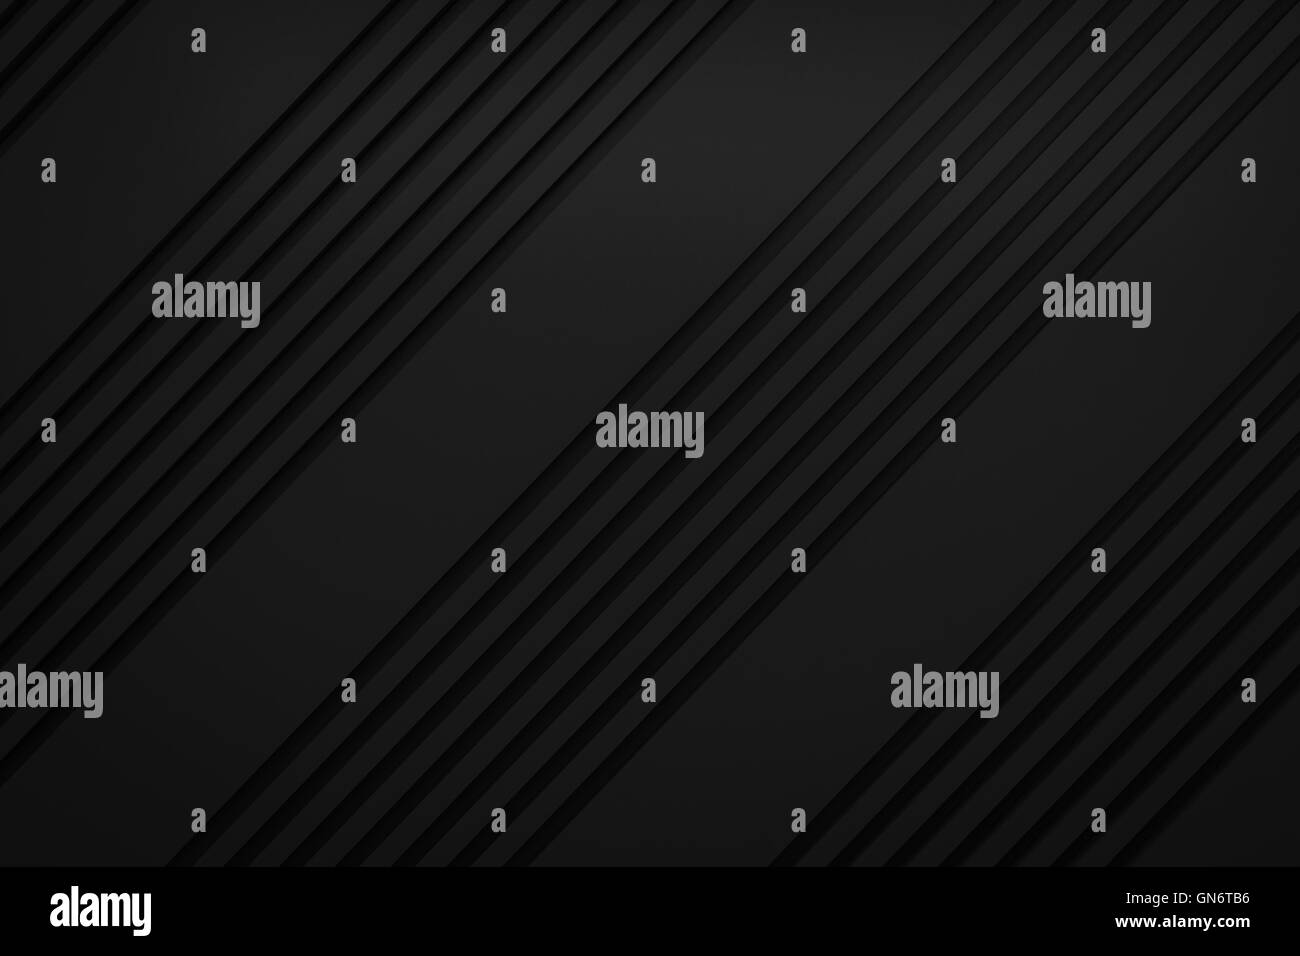 black siding oblique line layout paper material background 3d render - Stock Image